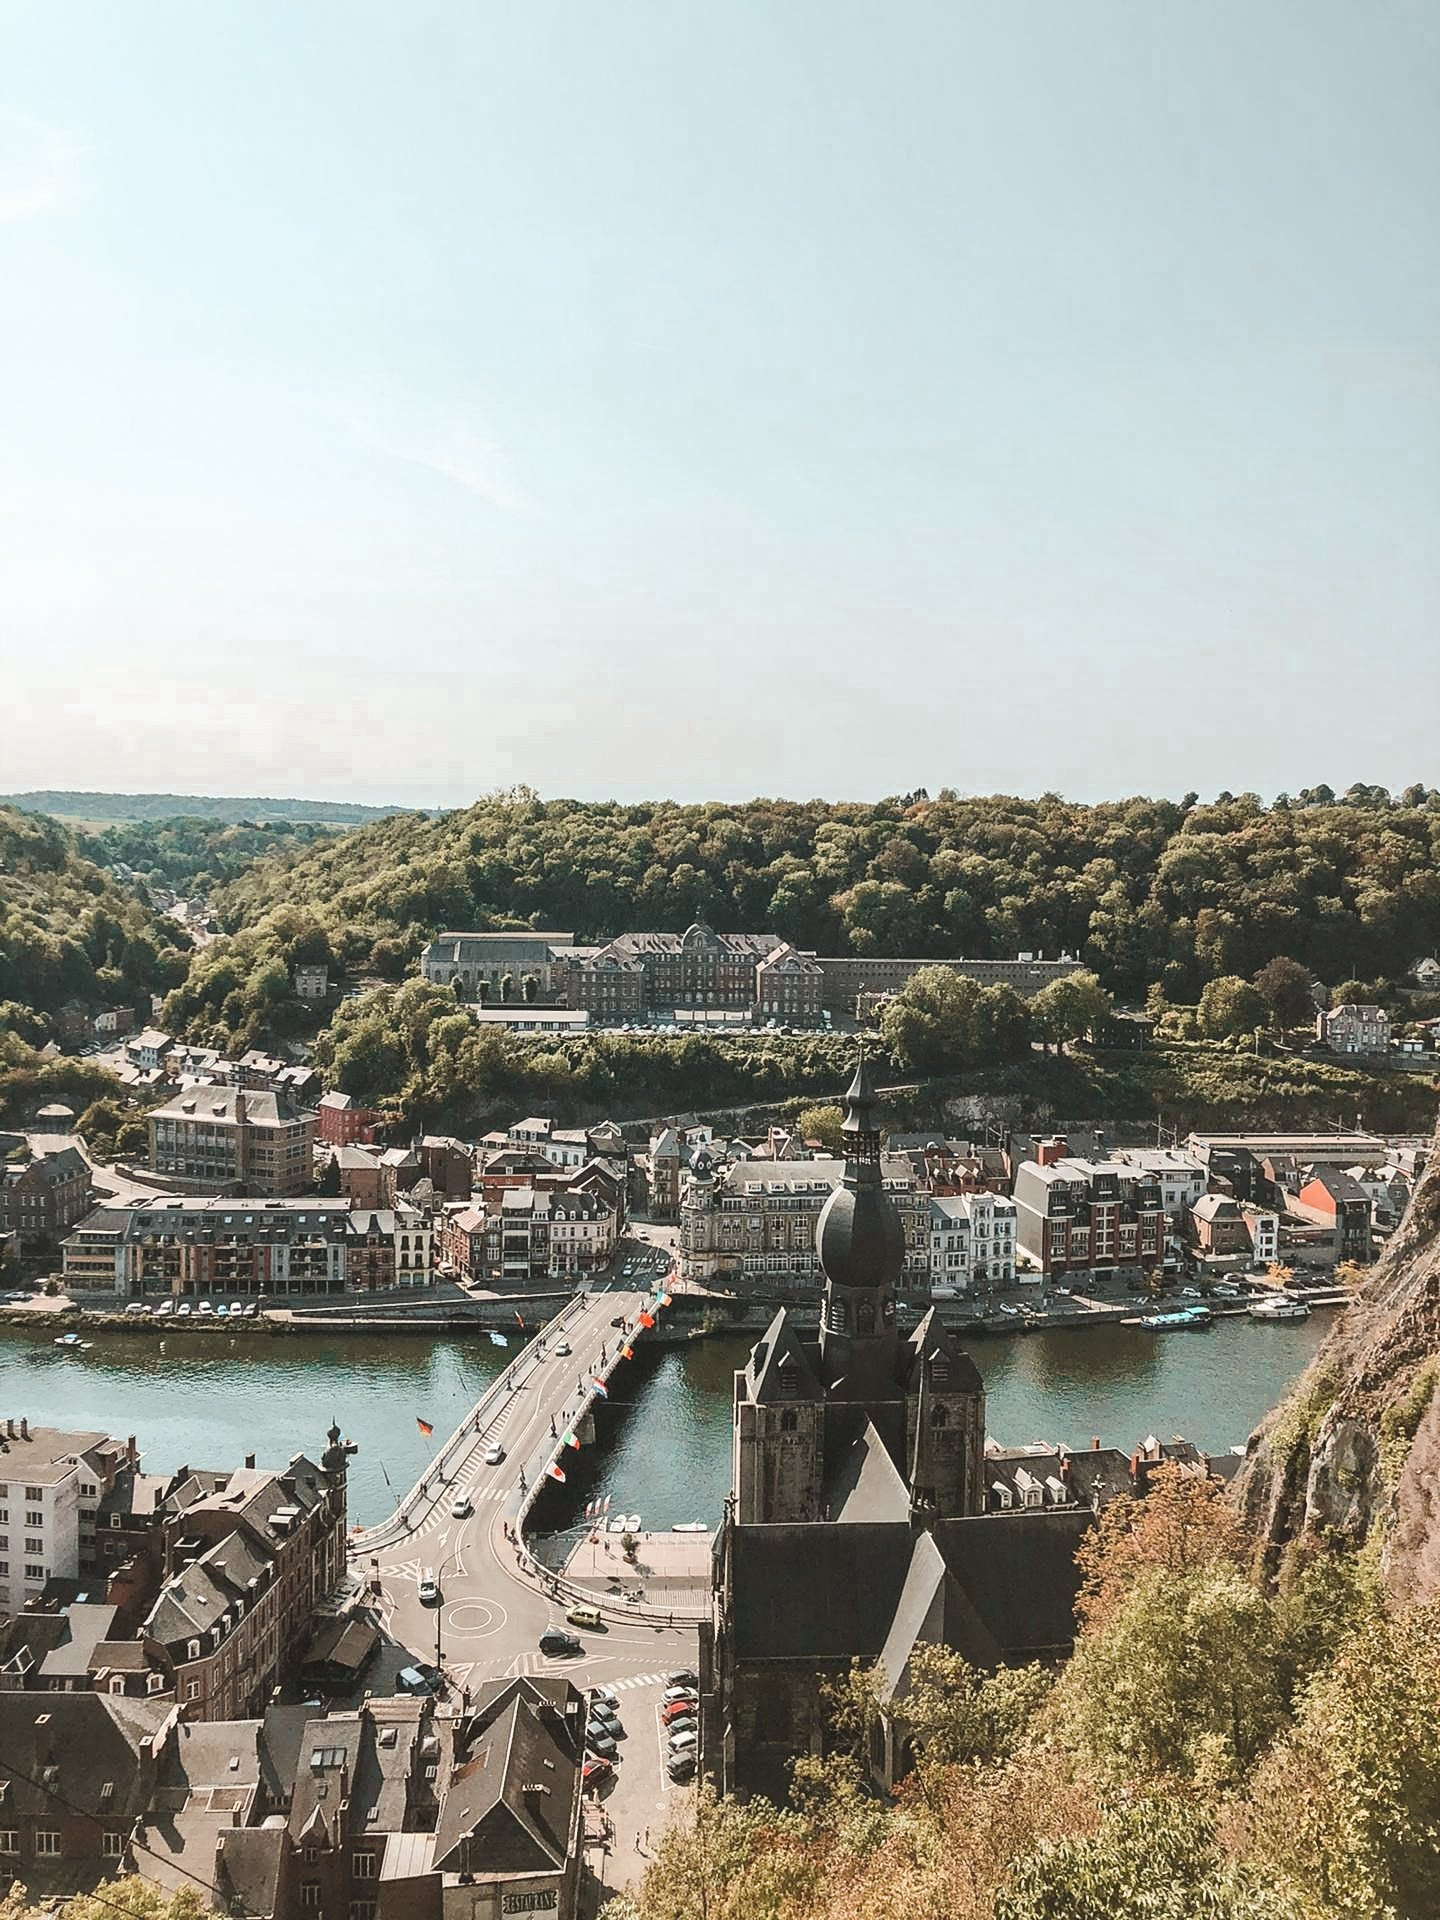 Panoramic view of Dinant and the Meuse River